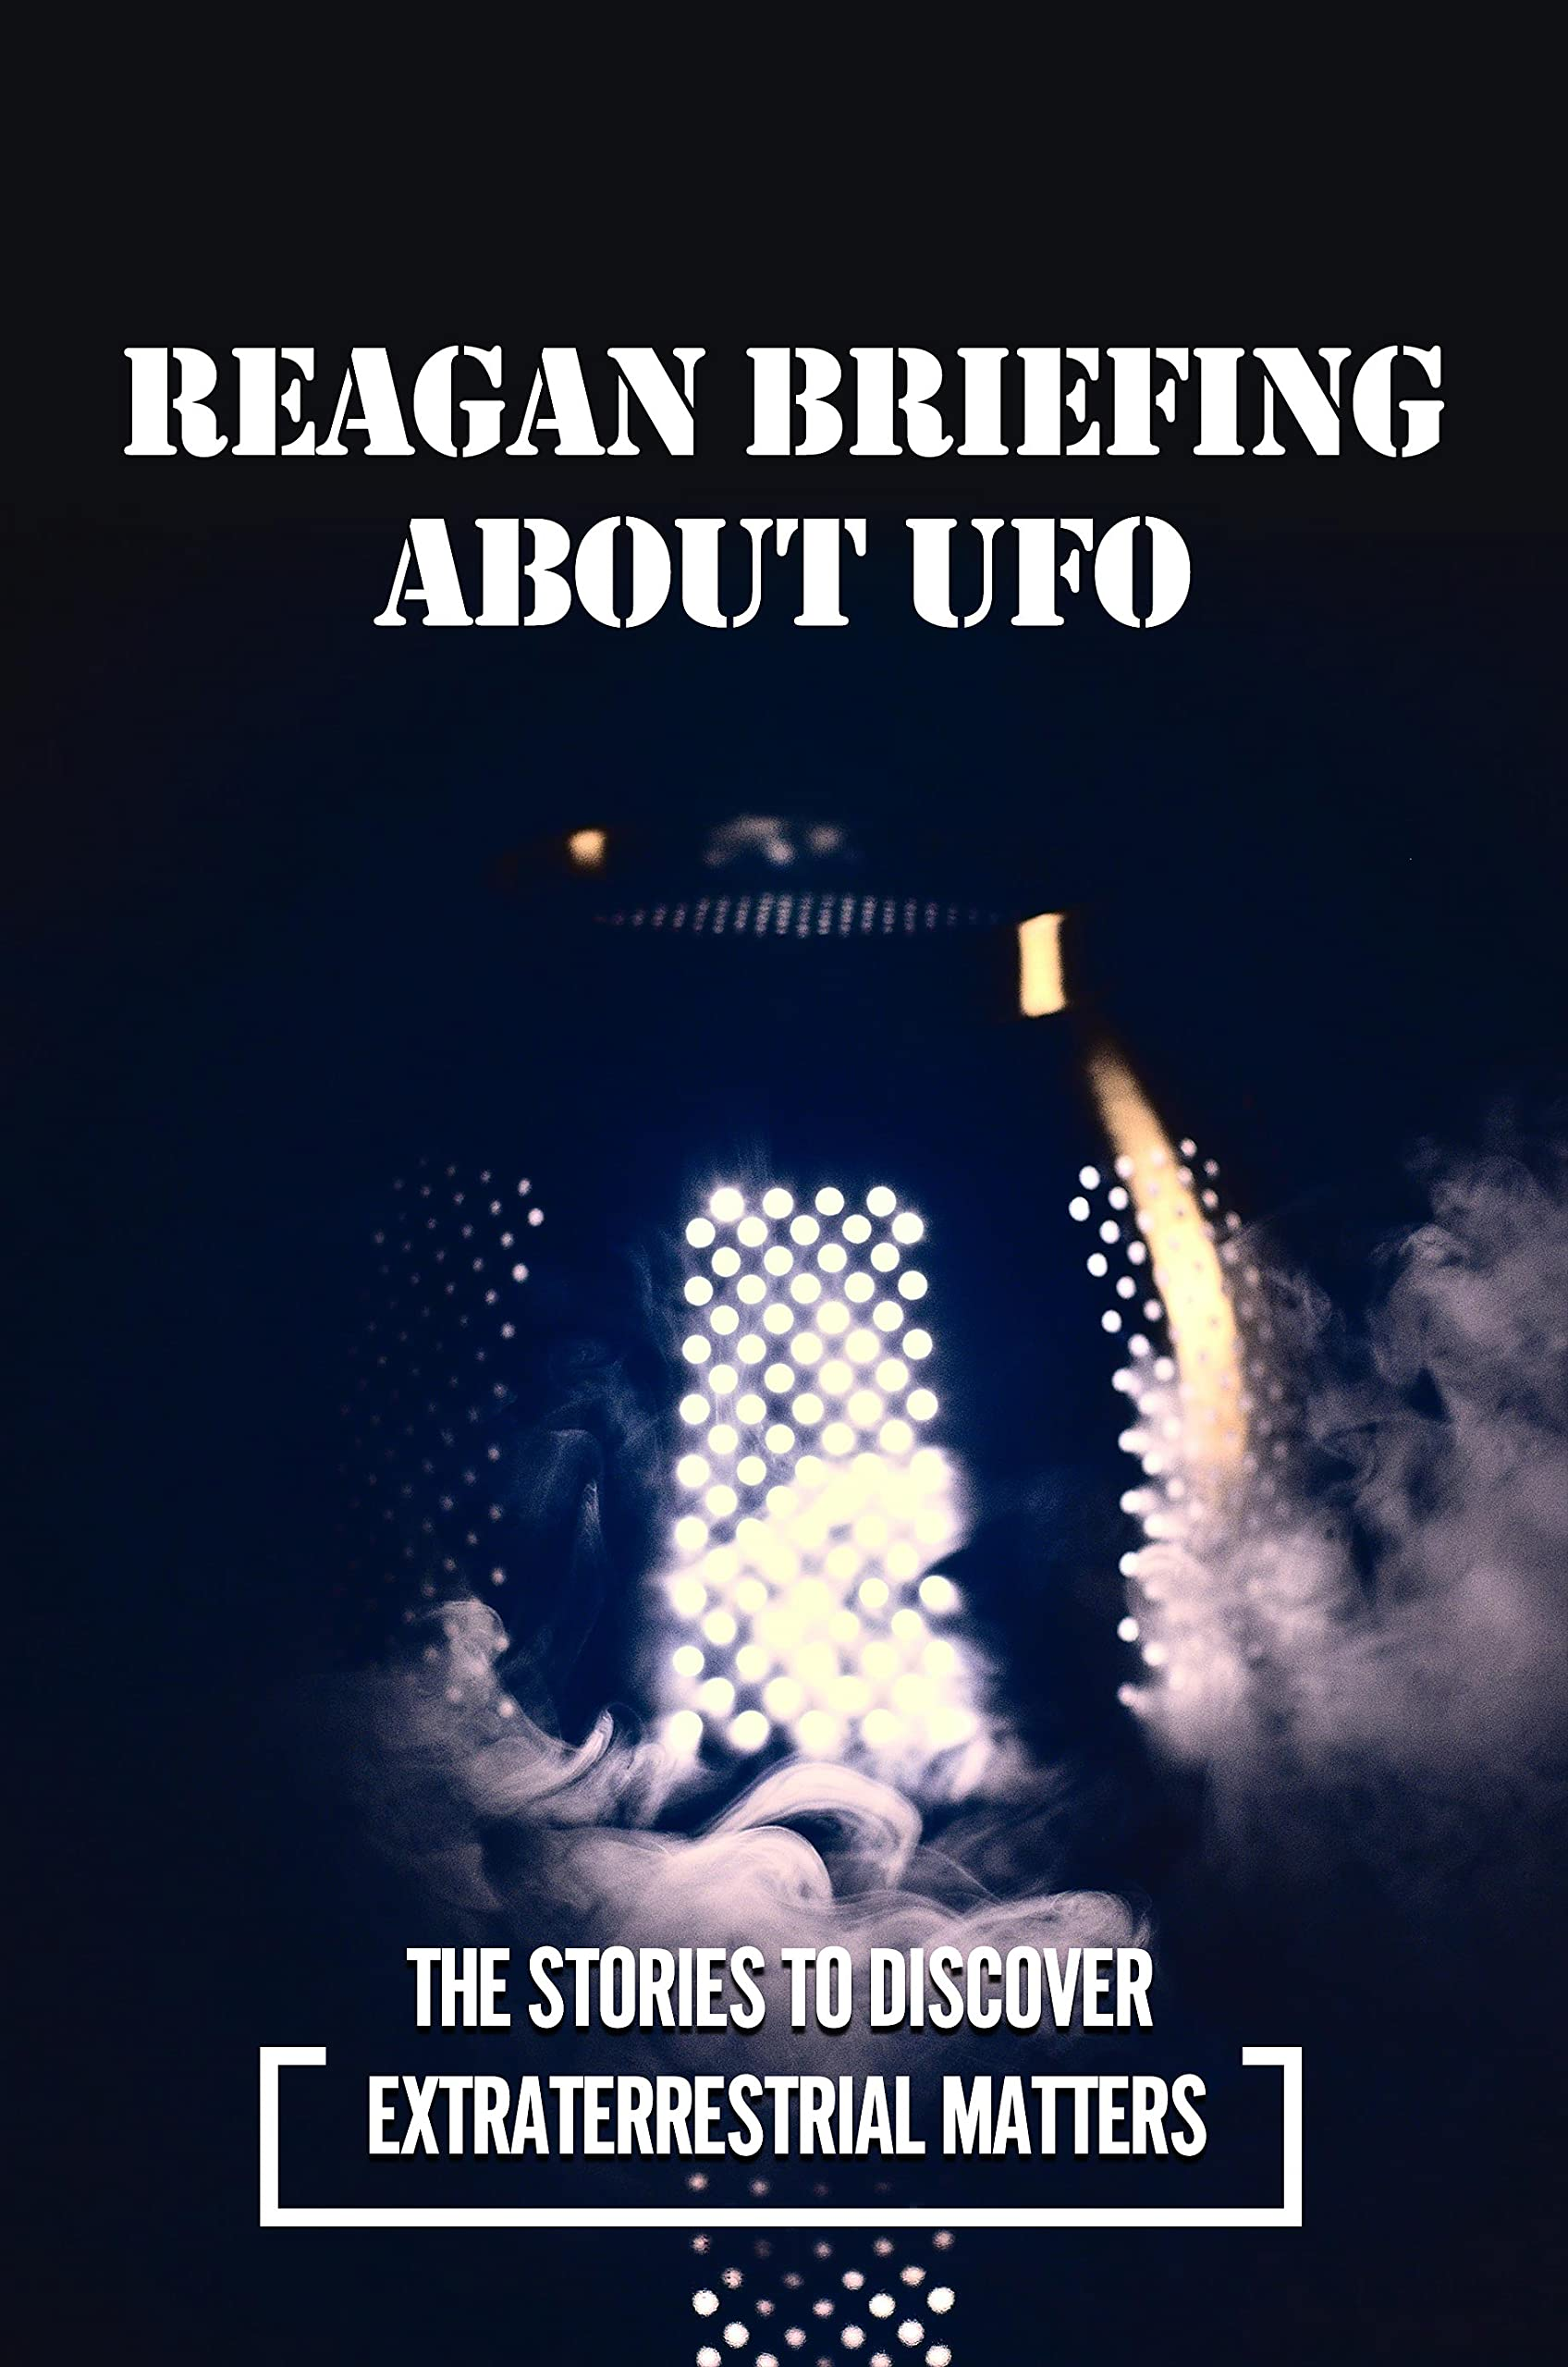 Reagan Briefing About UFO: The Stories To Discover Extraterrestrial Matters: The Government Cover-Up Of Ufo